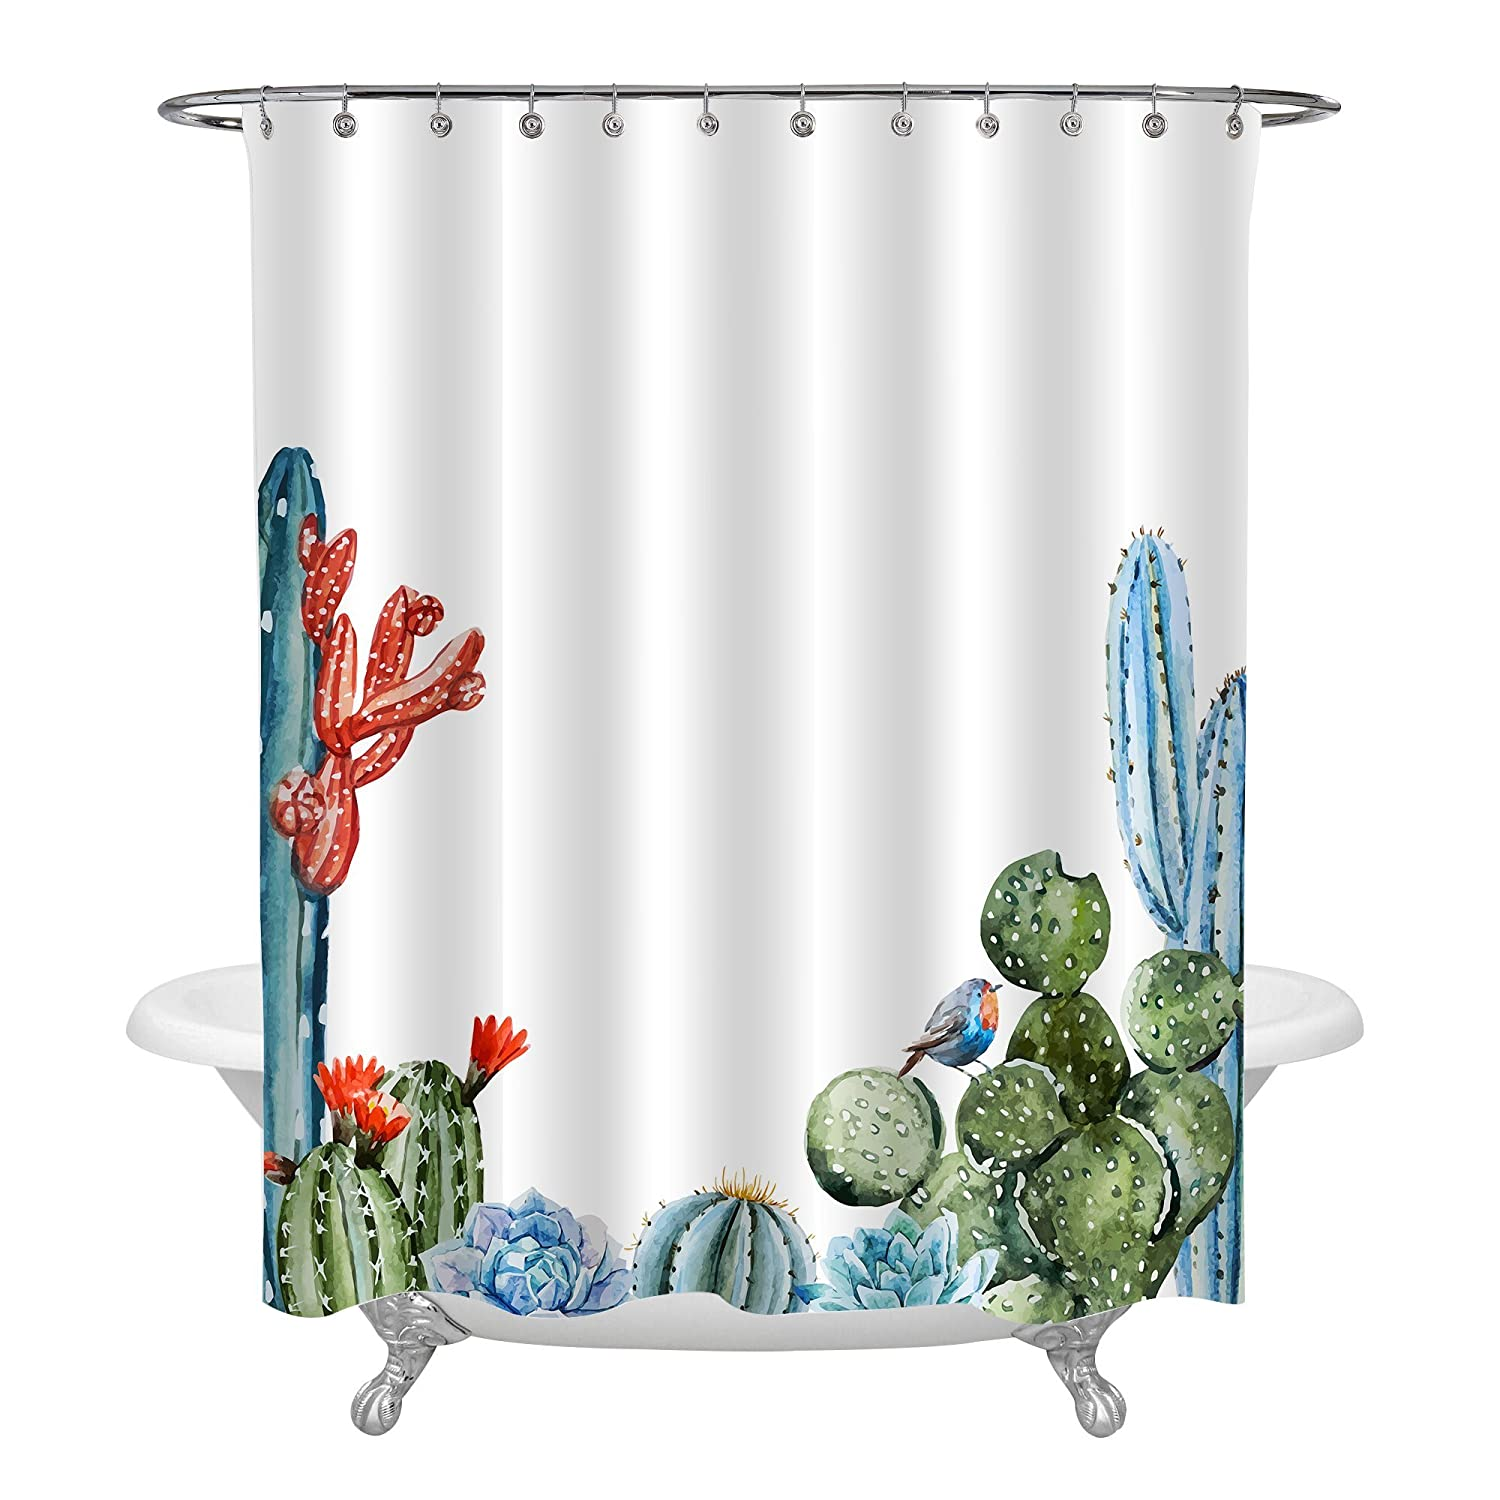 Cartoon Alpaca with Green Succulent Plant Home Decor 72x72 Standard Size SC-083009-72-72 Birthday Presents for Children MitoVilla Texas Blossom Cactus Shower Curtain Animal Themed Peru Llama Bathroom Accessories